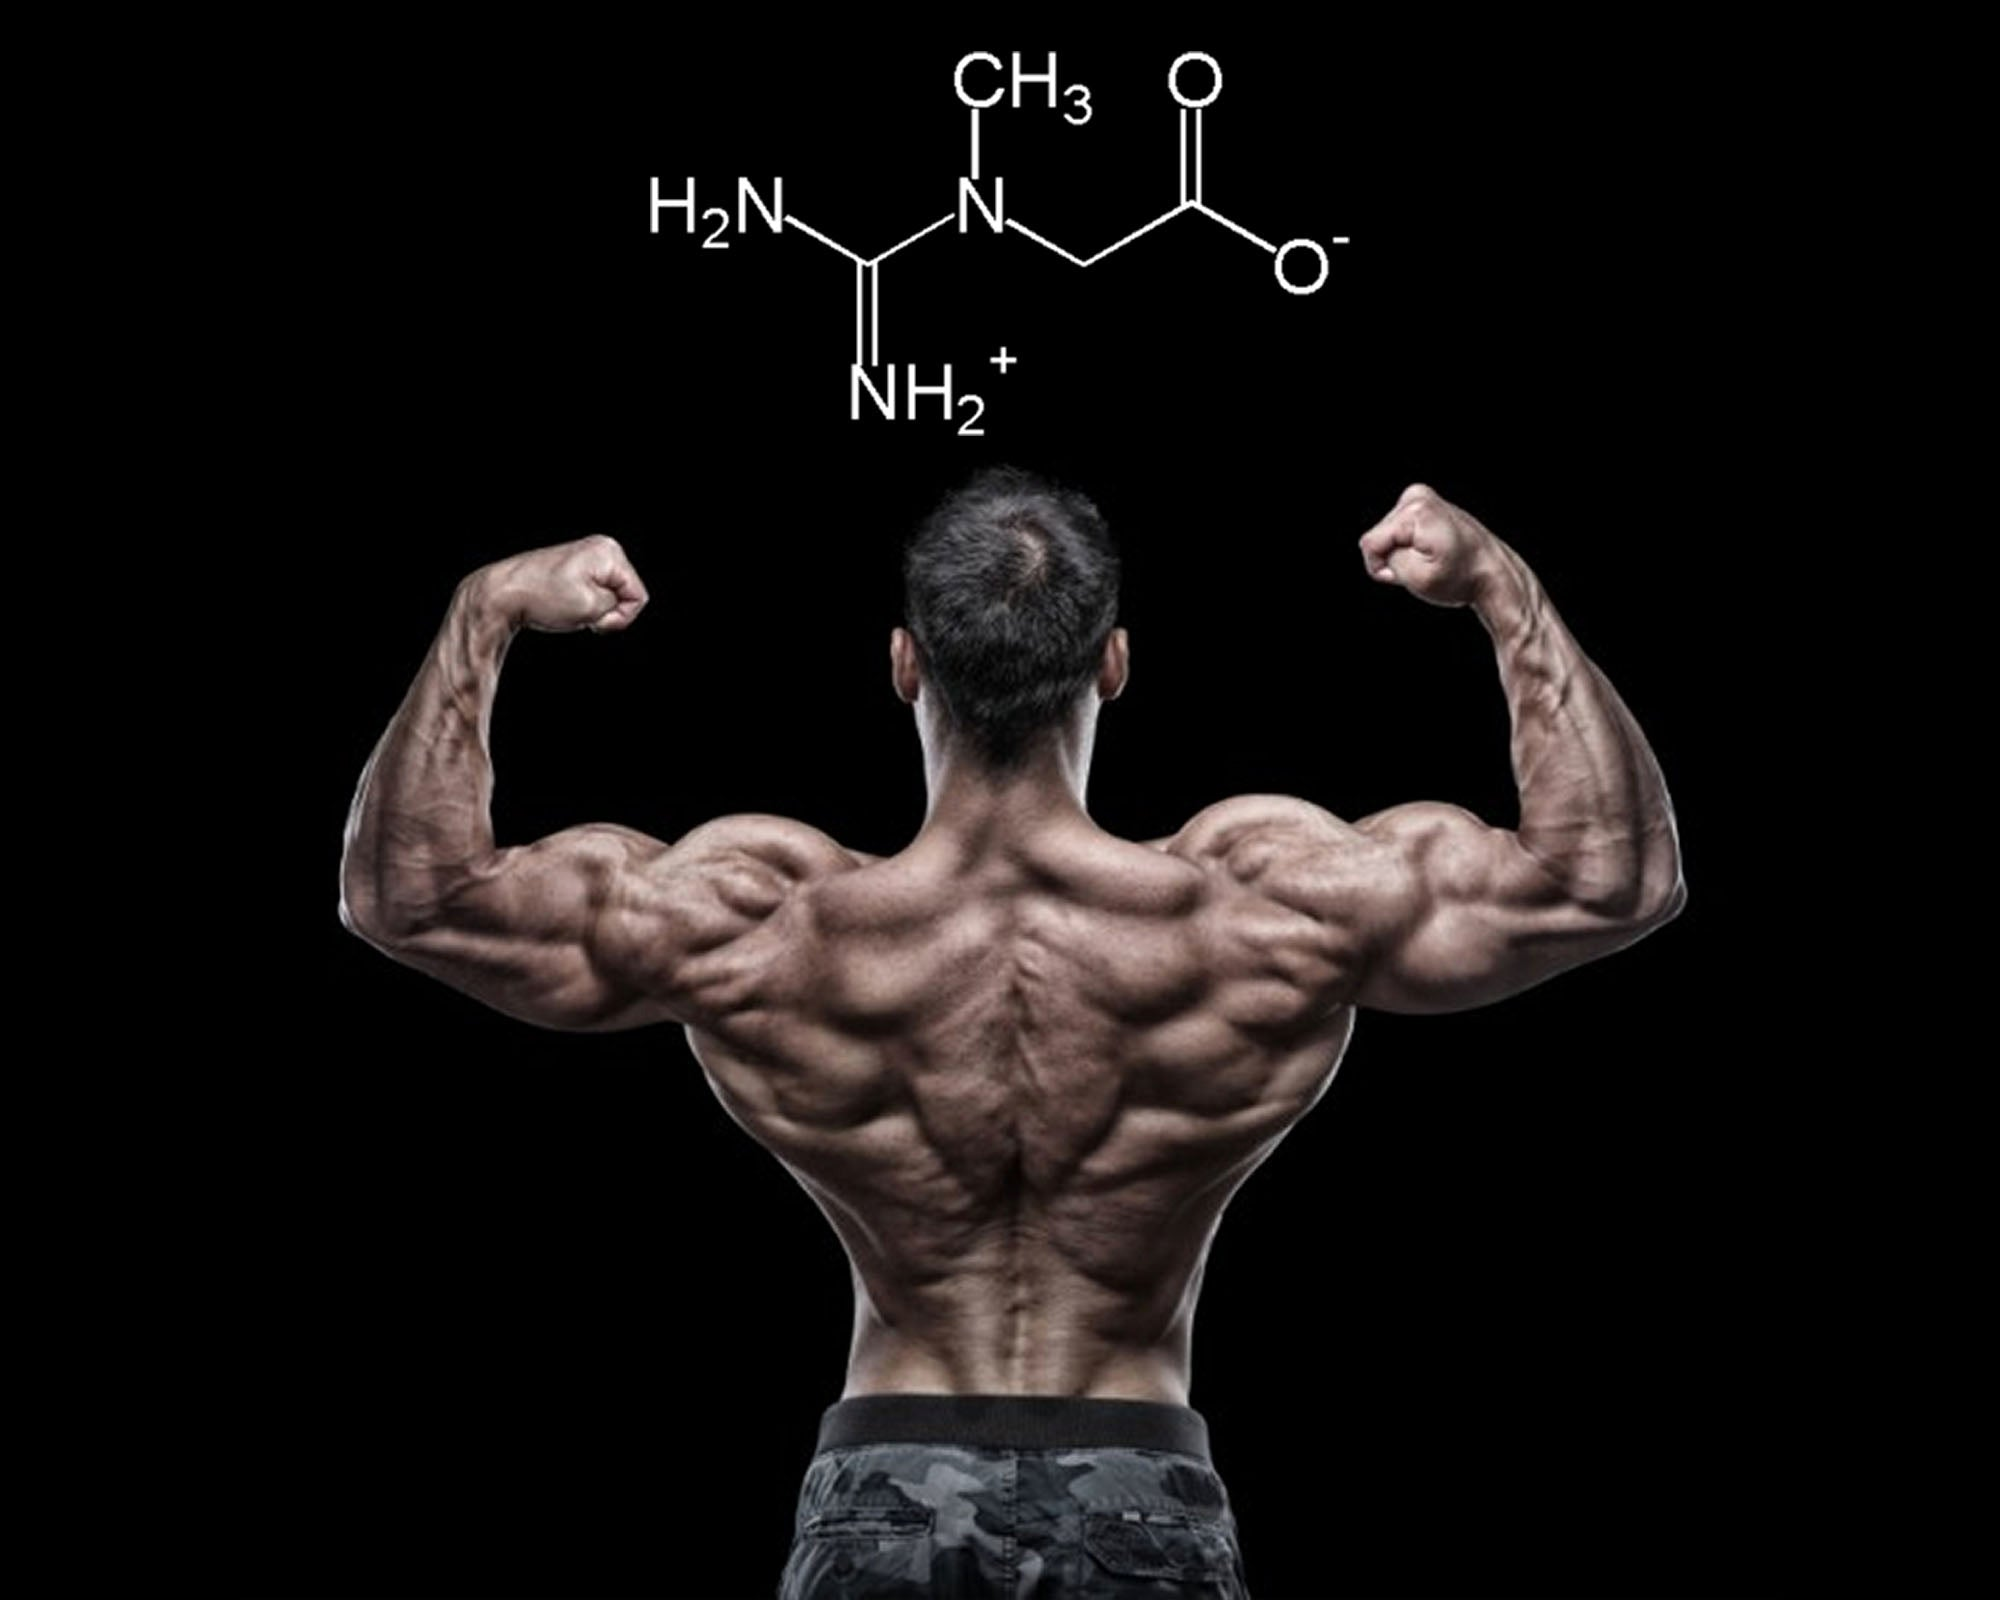 Supplement Education: Creatine